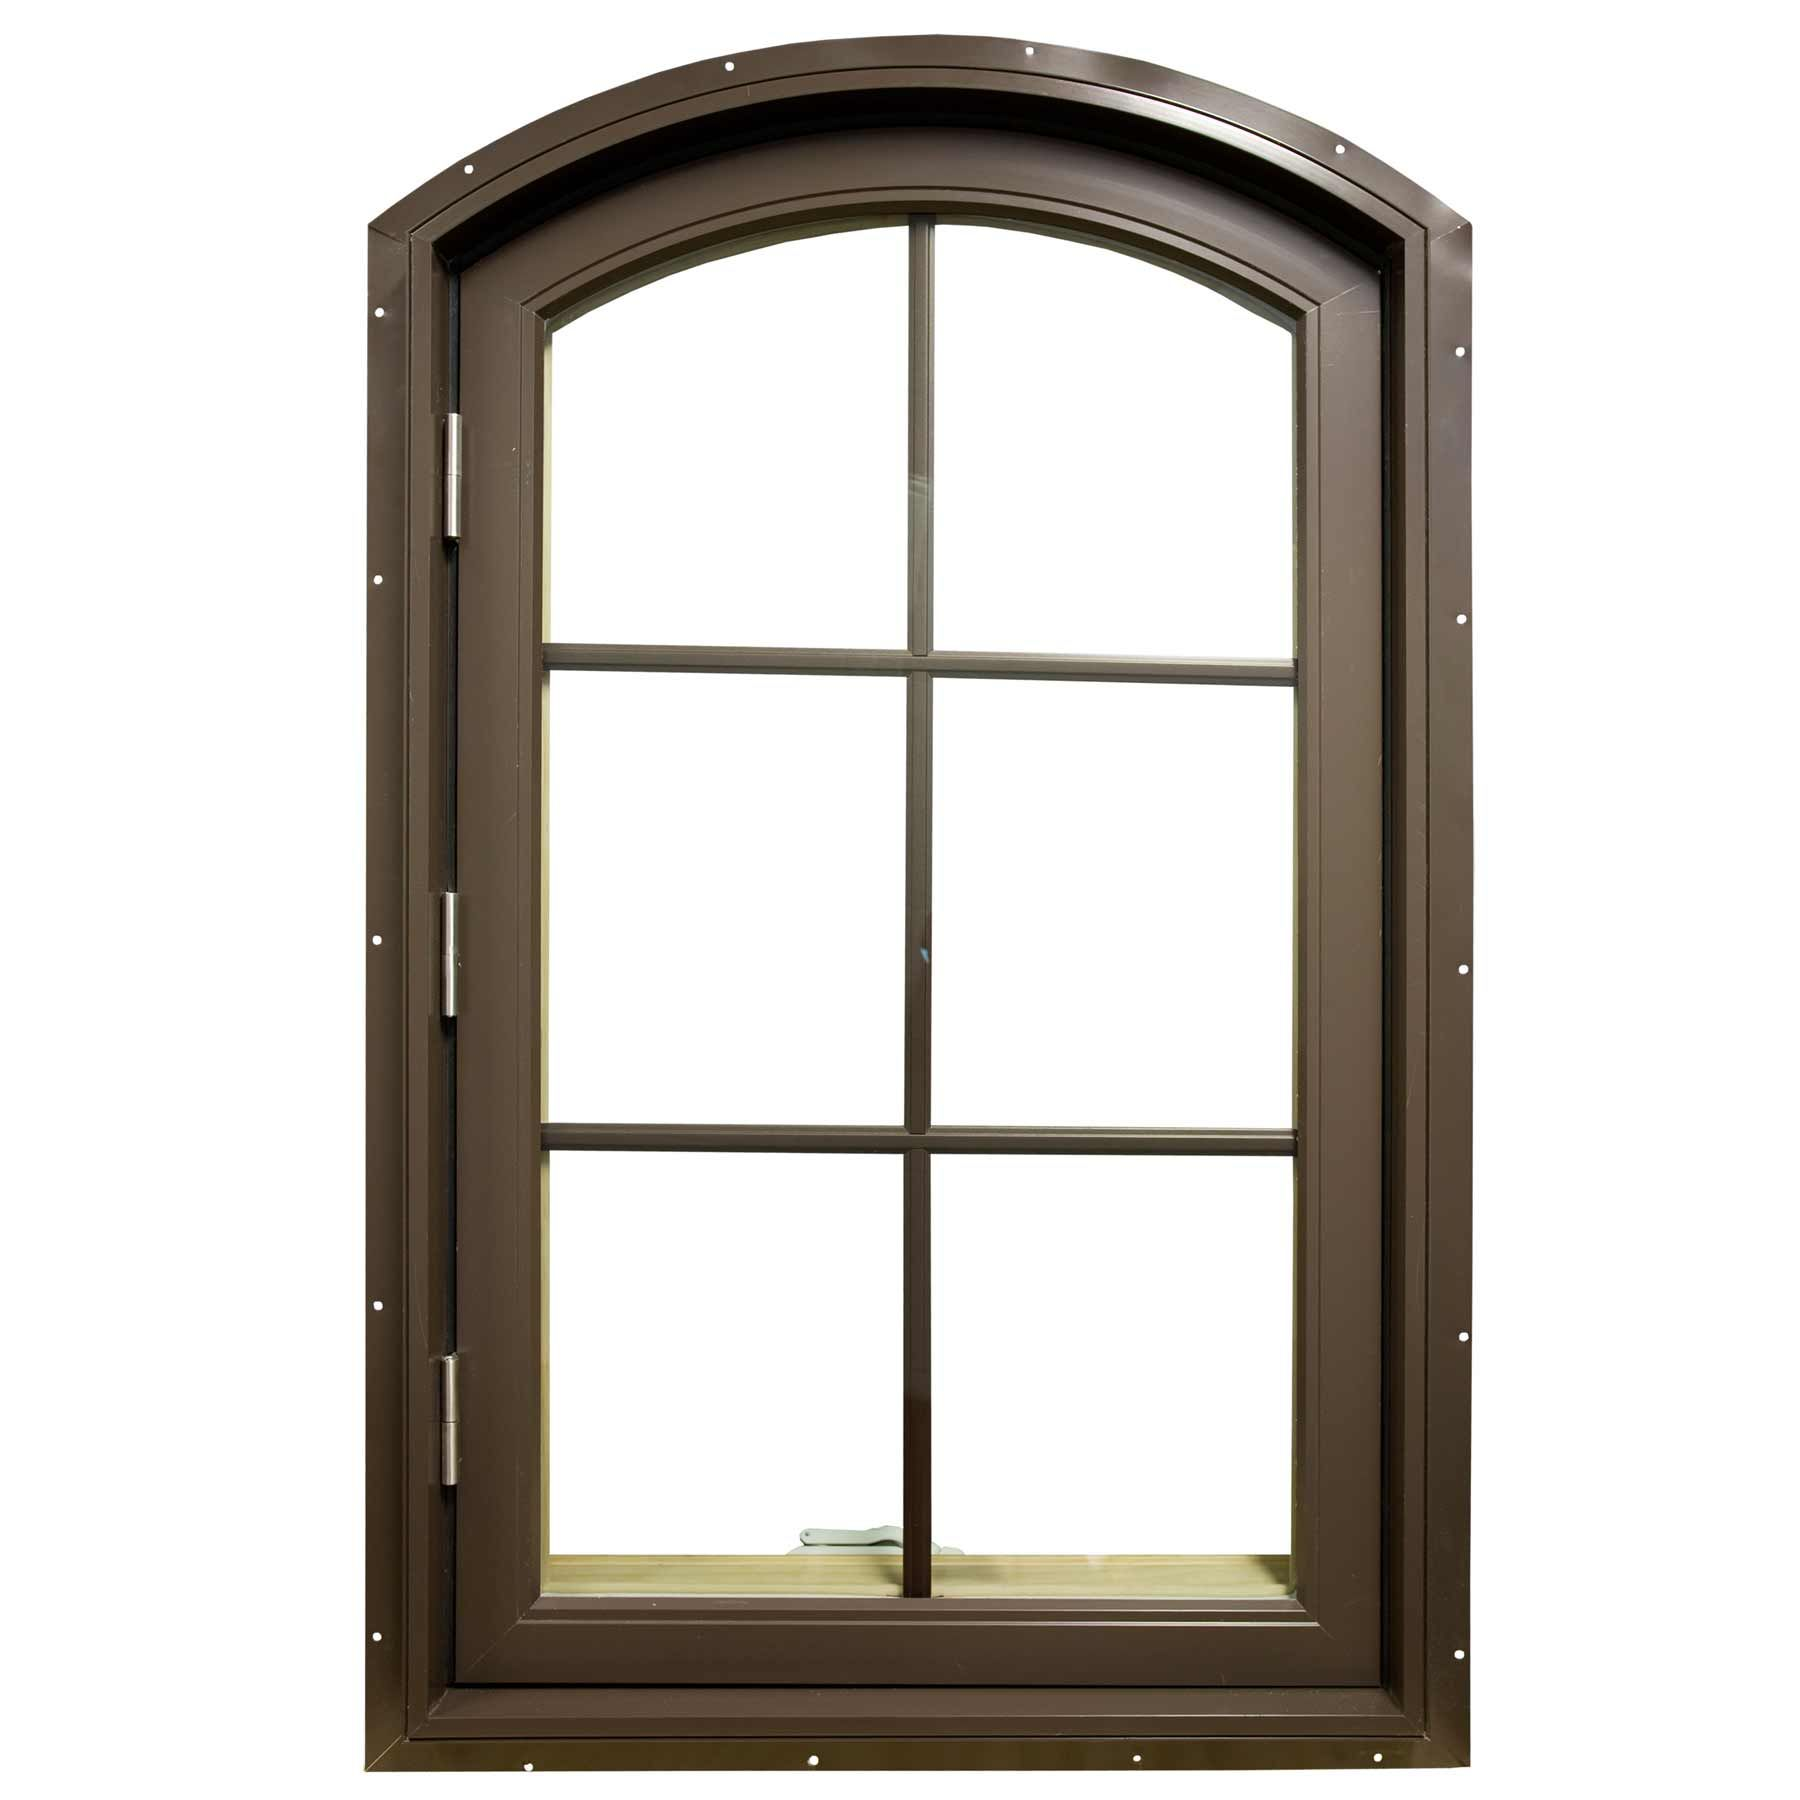 Metal window frames designs images for Metal window designs